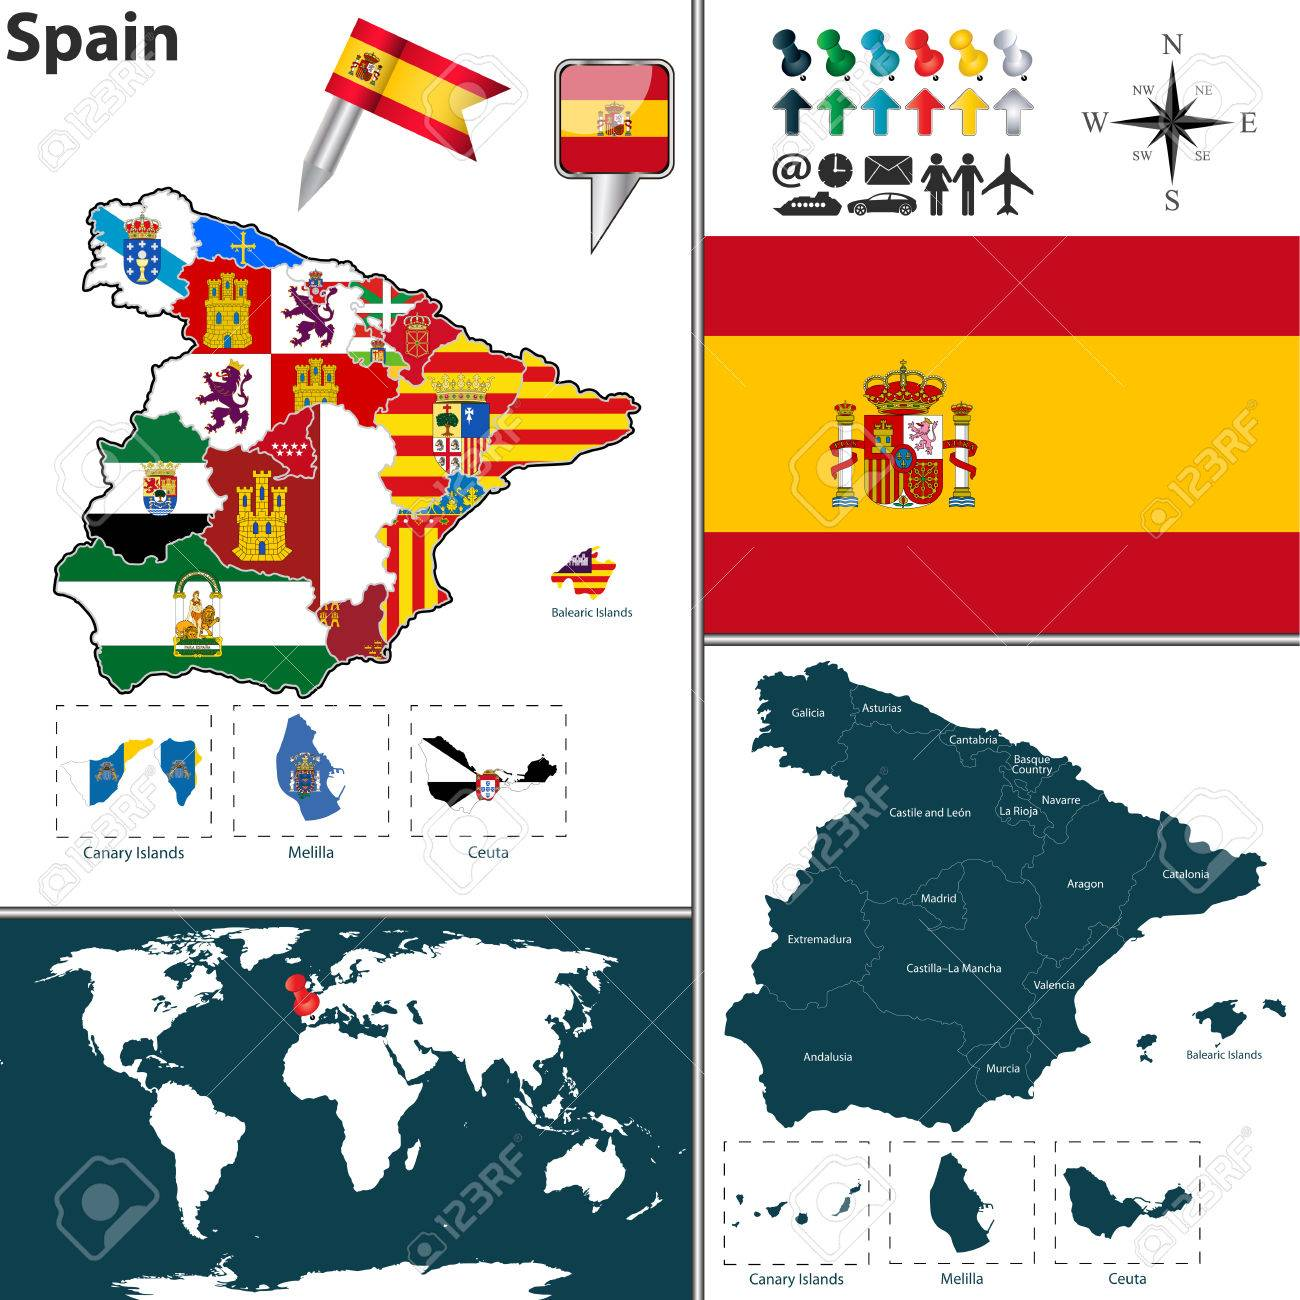 Map Of Spain With Regions With Flags Royalty Free Cliparts - Spain regions map